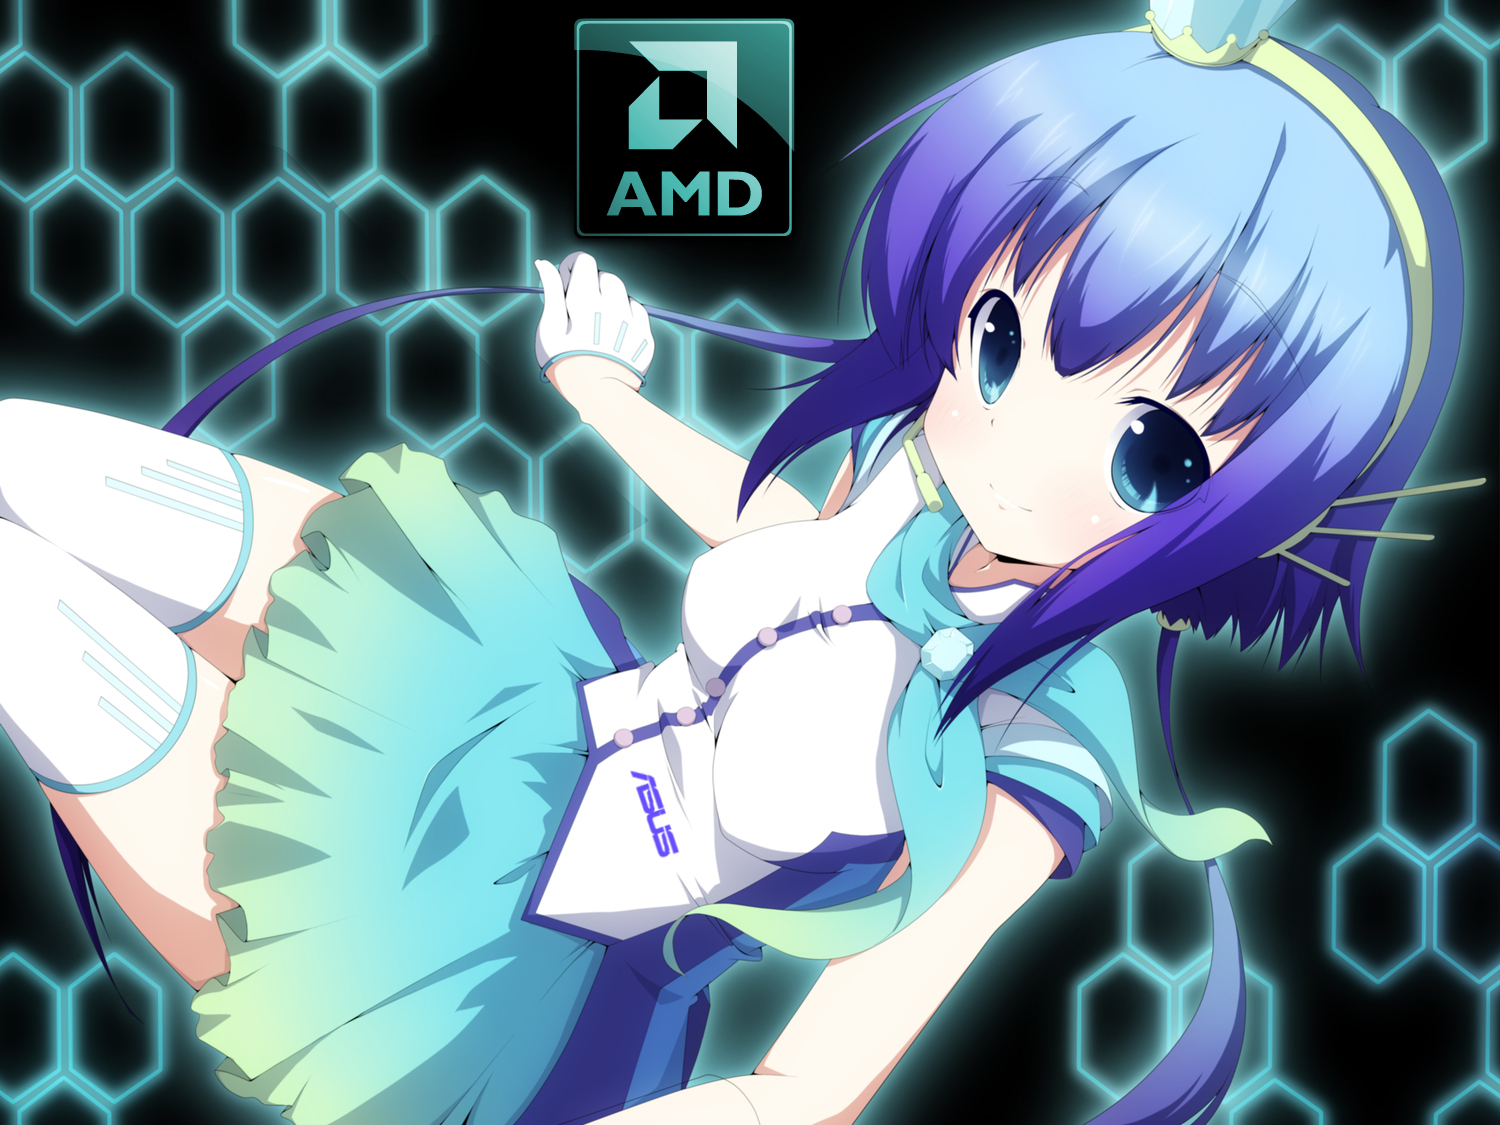 Amd asus gamer anime Wallpaper by ipodpunker 1500x1125